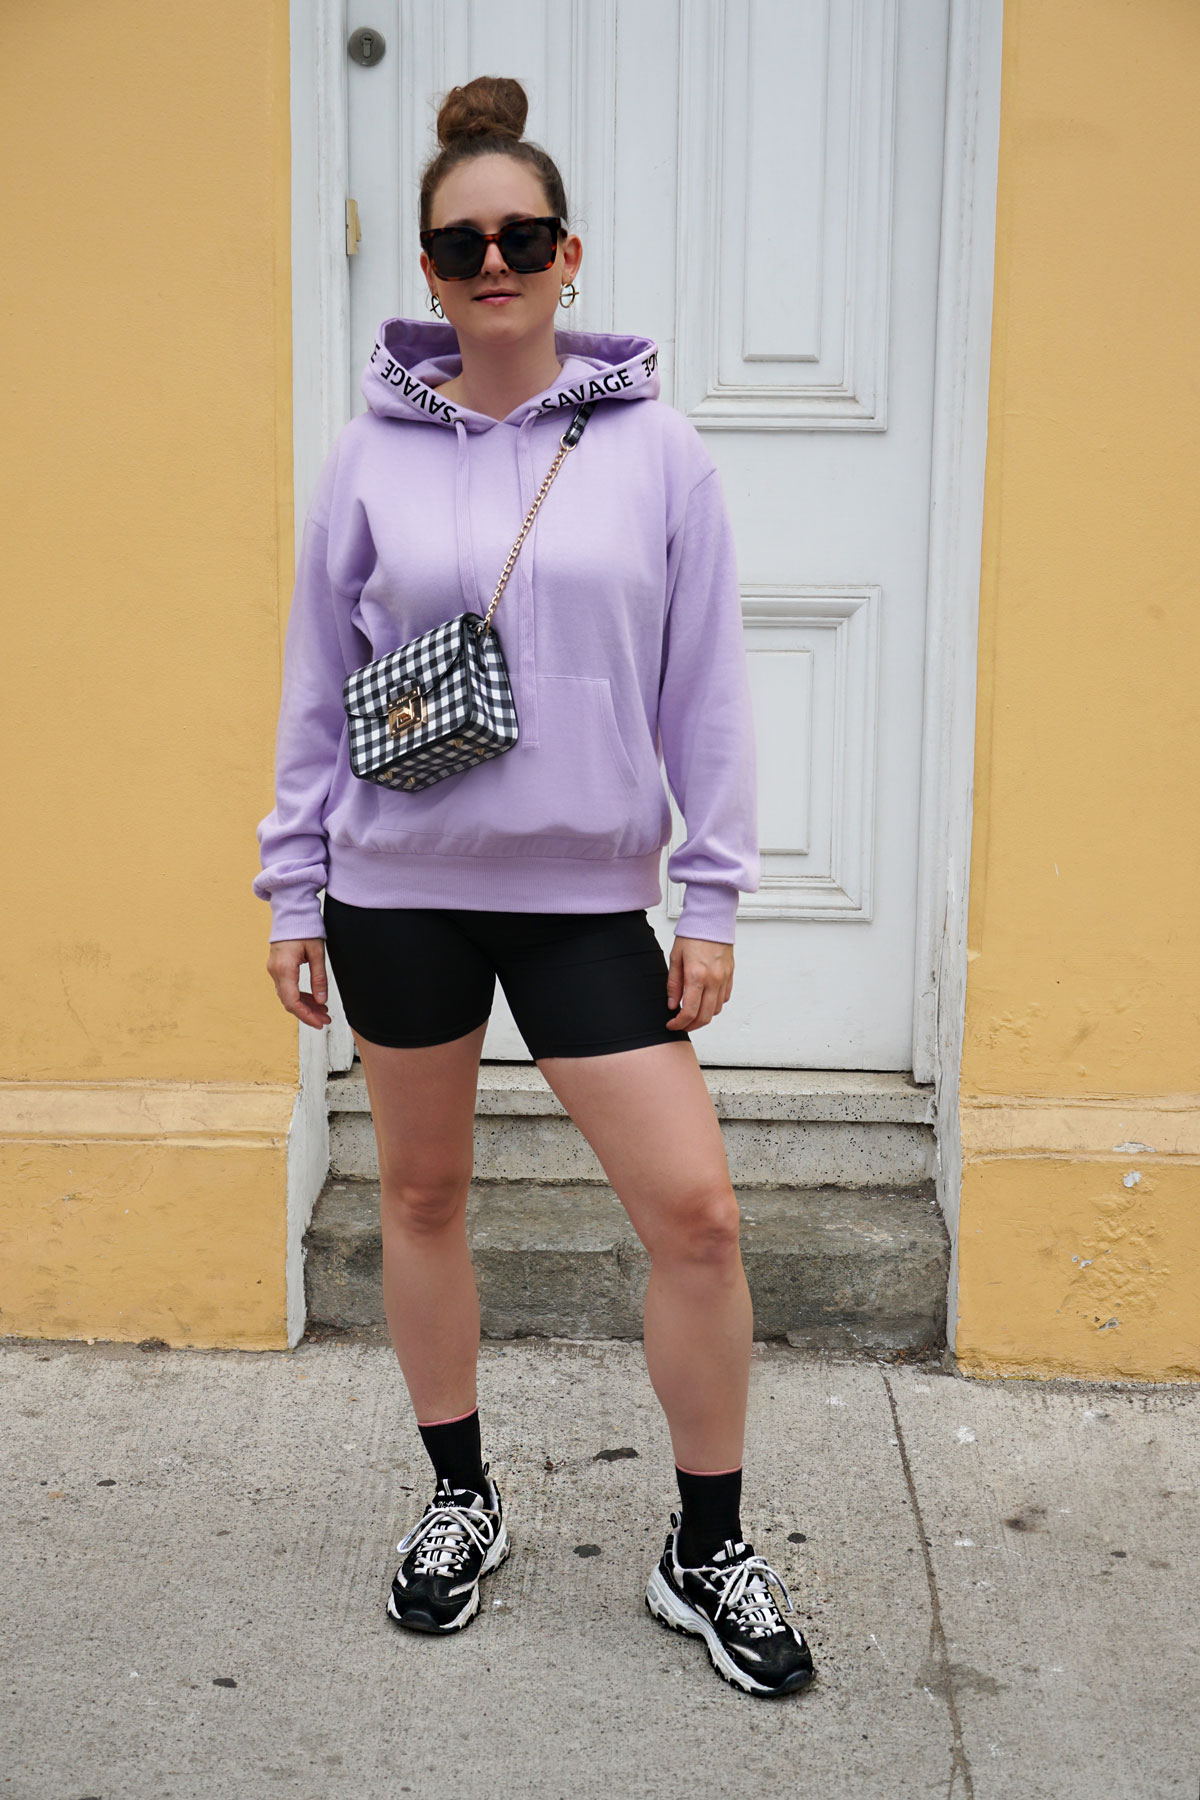 a hoodie the spring color soft lilac with black leggings and sneakers.